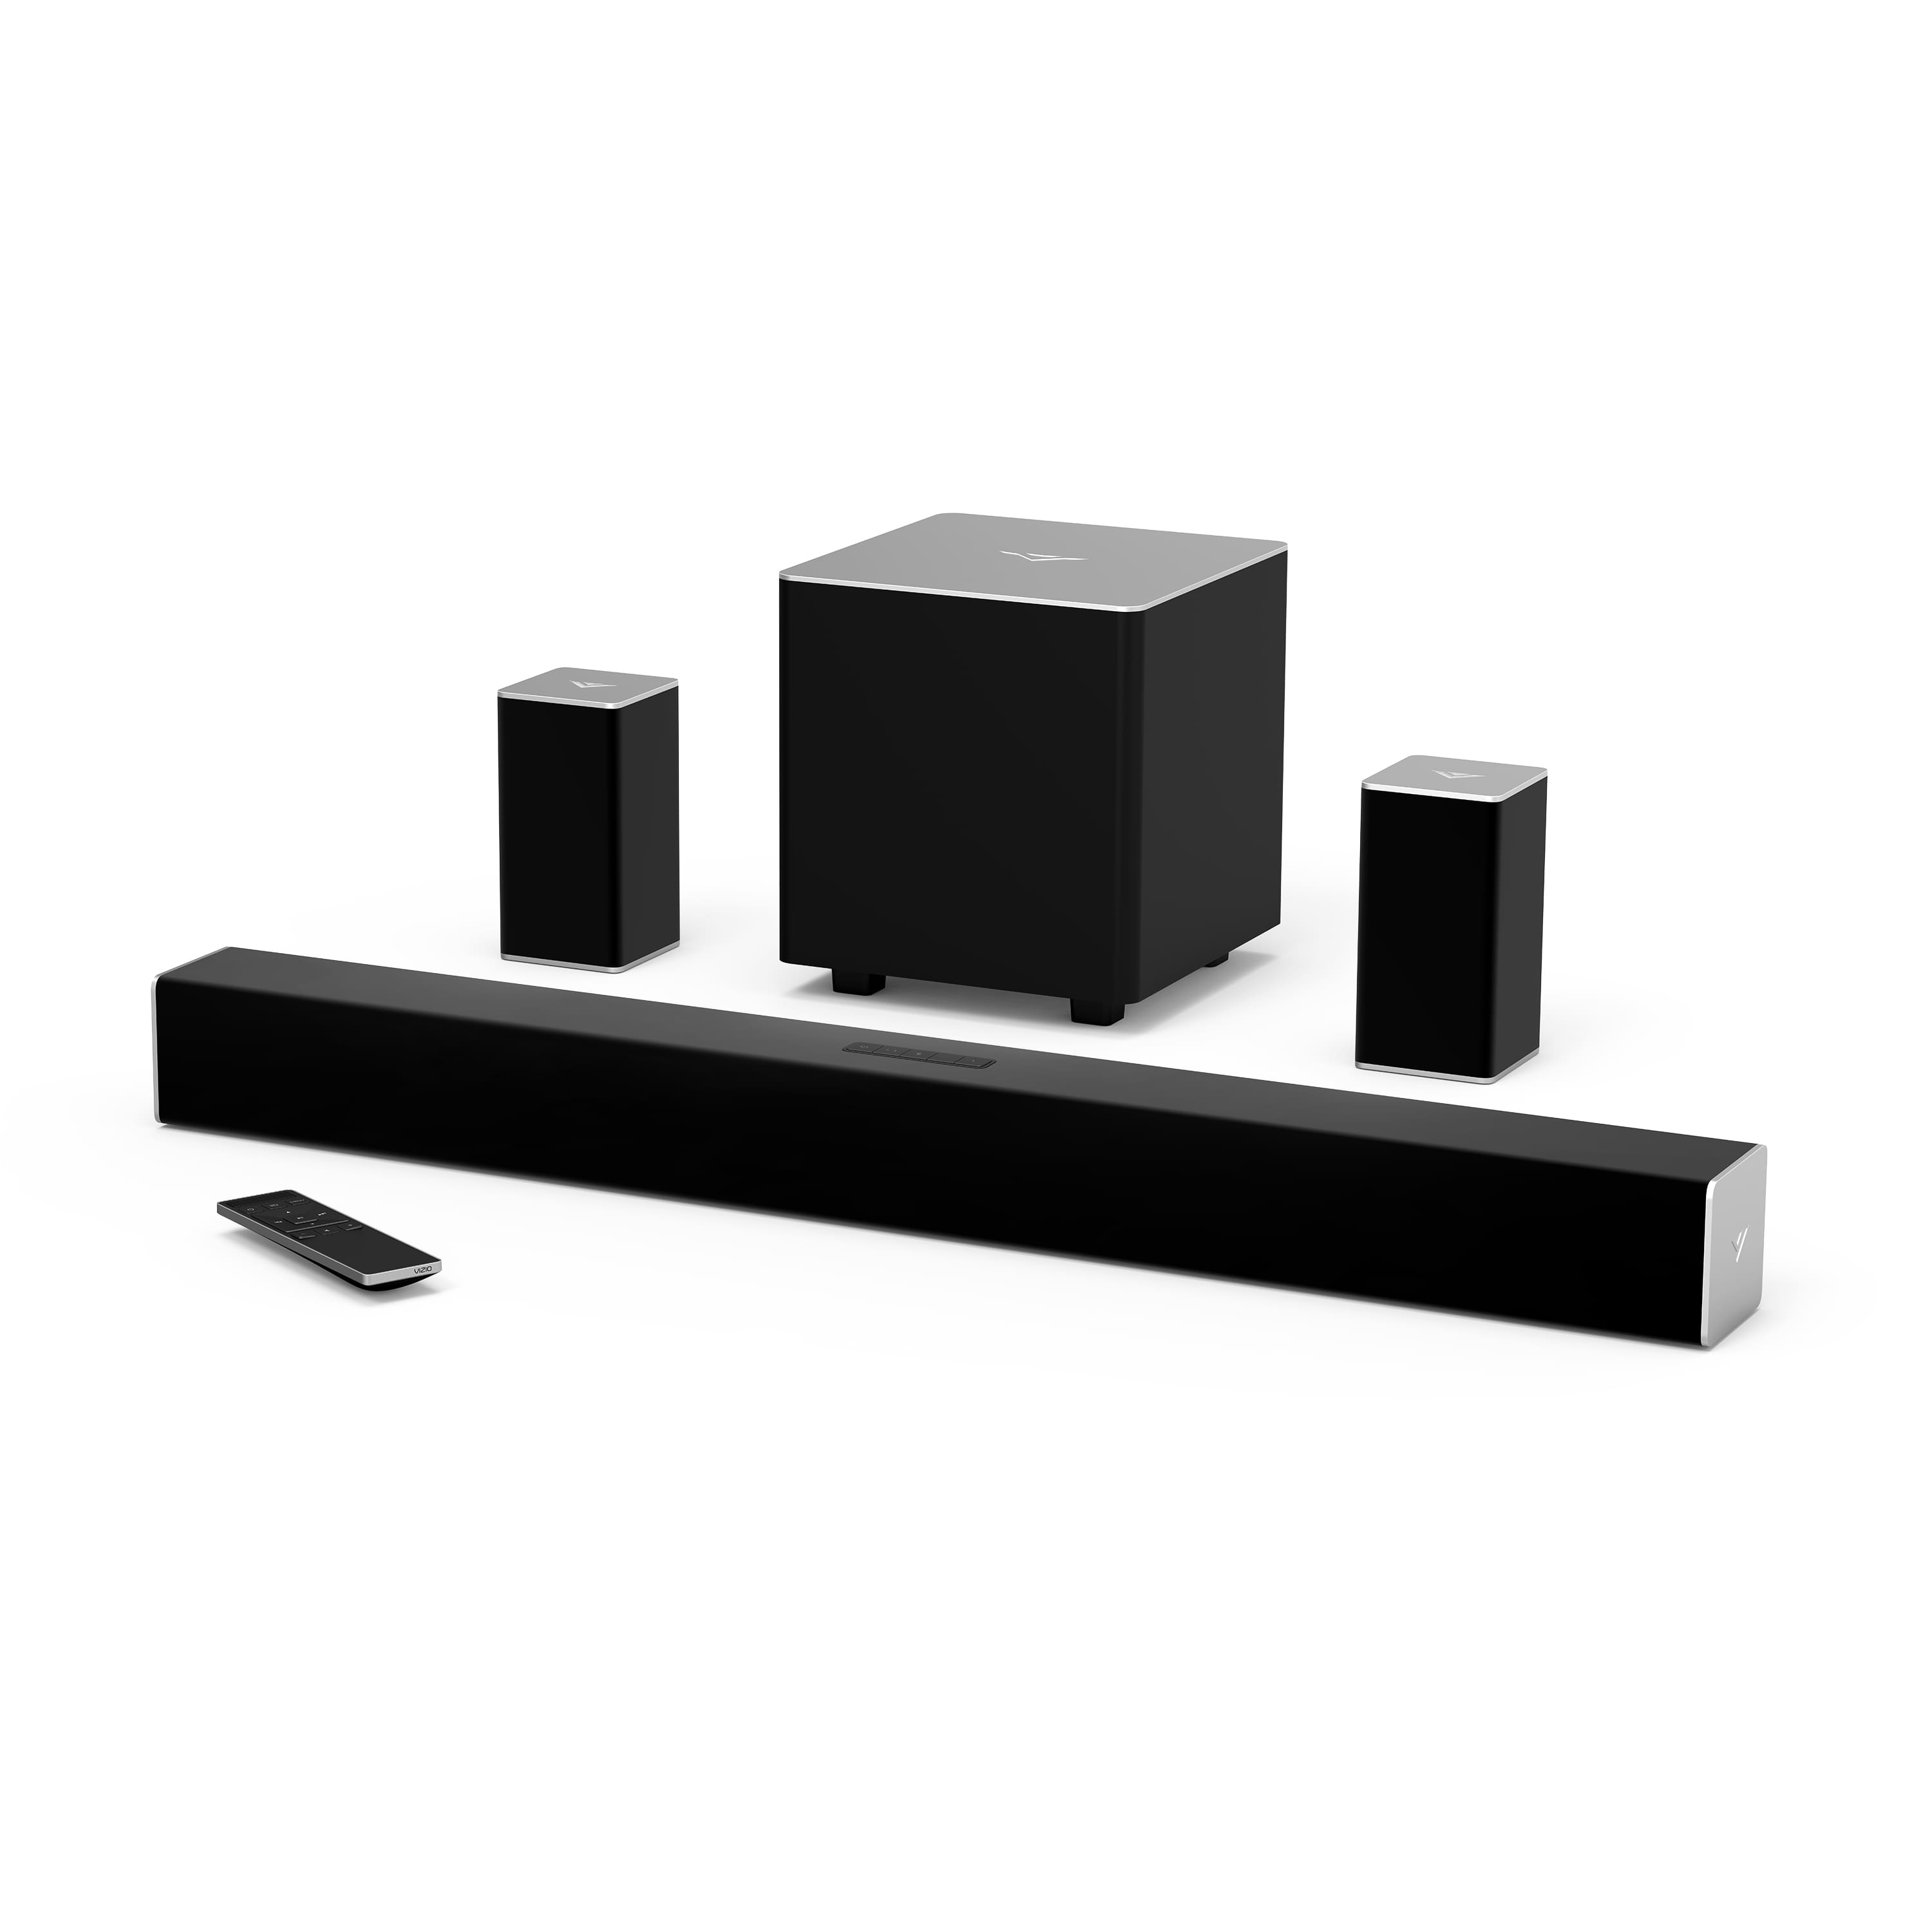 """VIZIO 32"""" 5.1 Channel Soundbar System with Wireless Subwoofer and Rear Speakers (SB3251n-E0) for $148 + FS"""